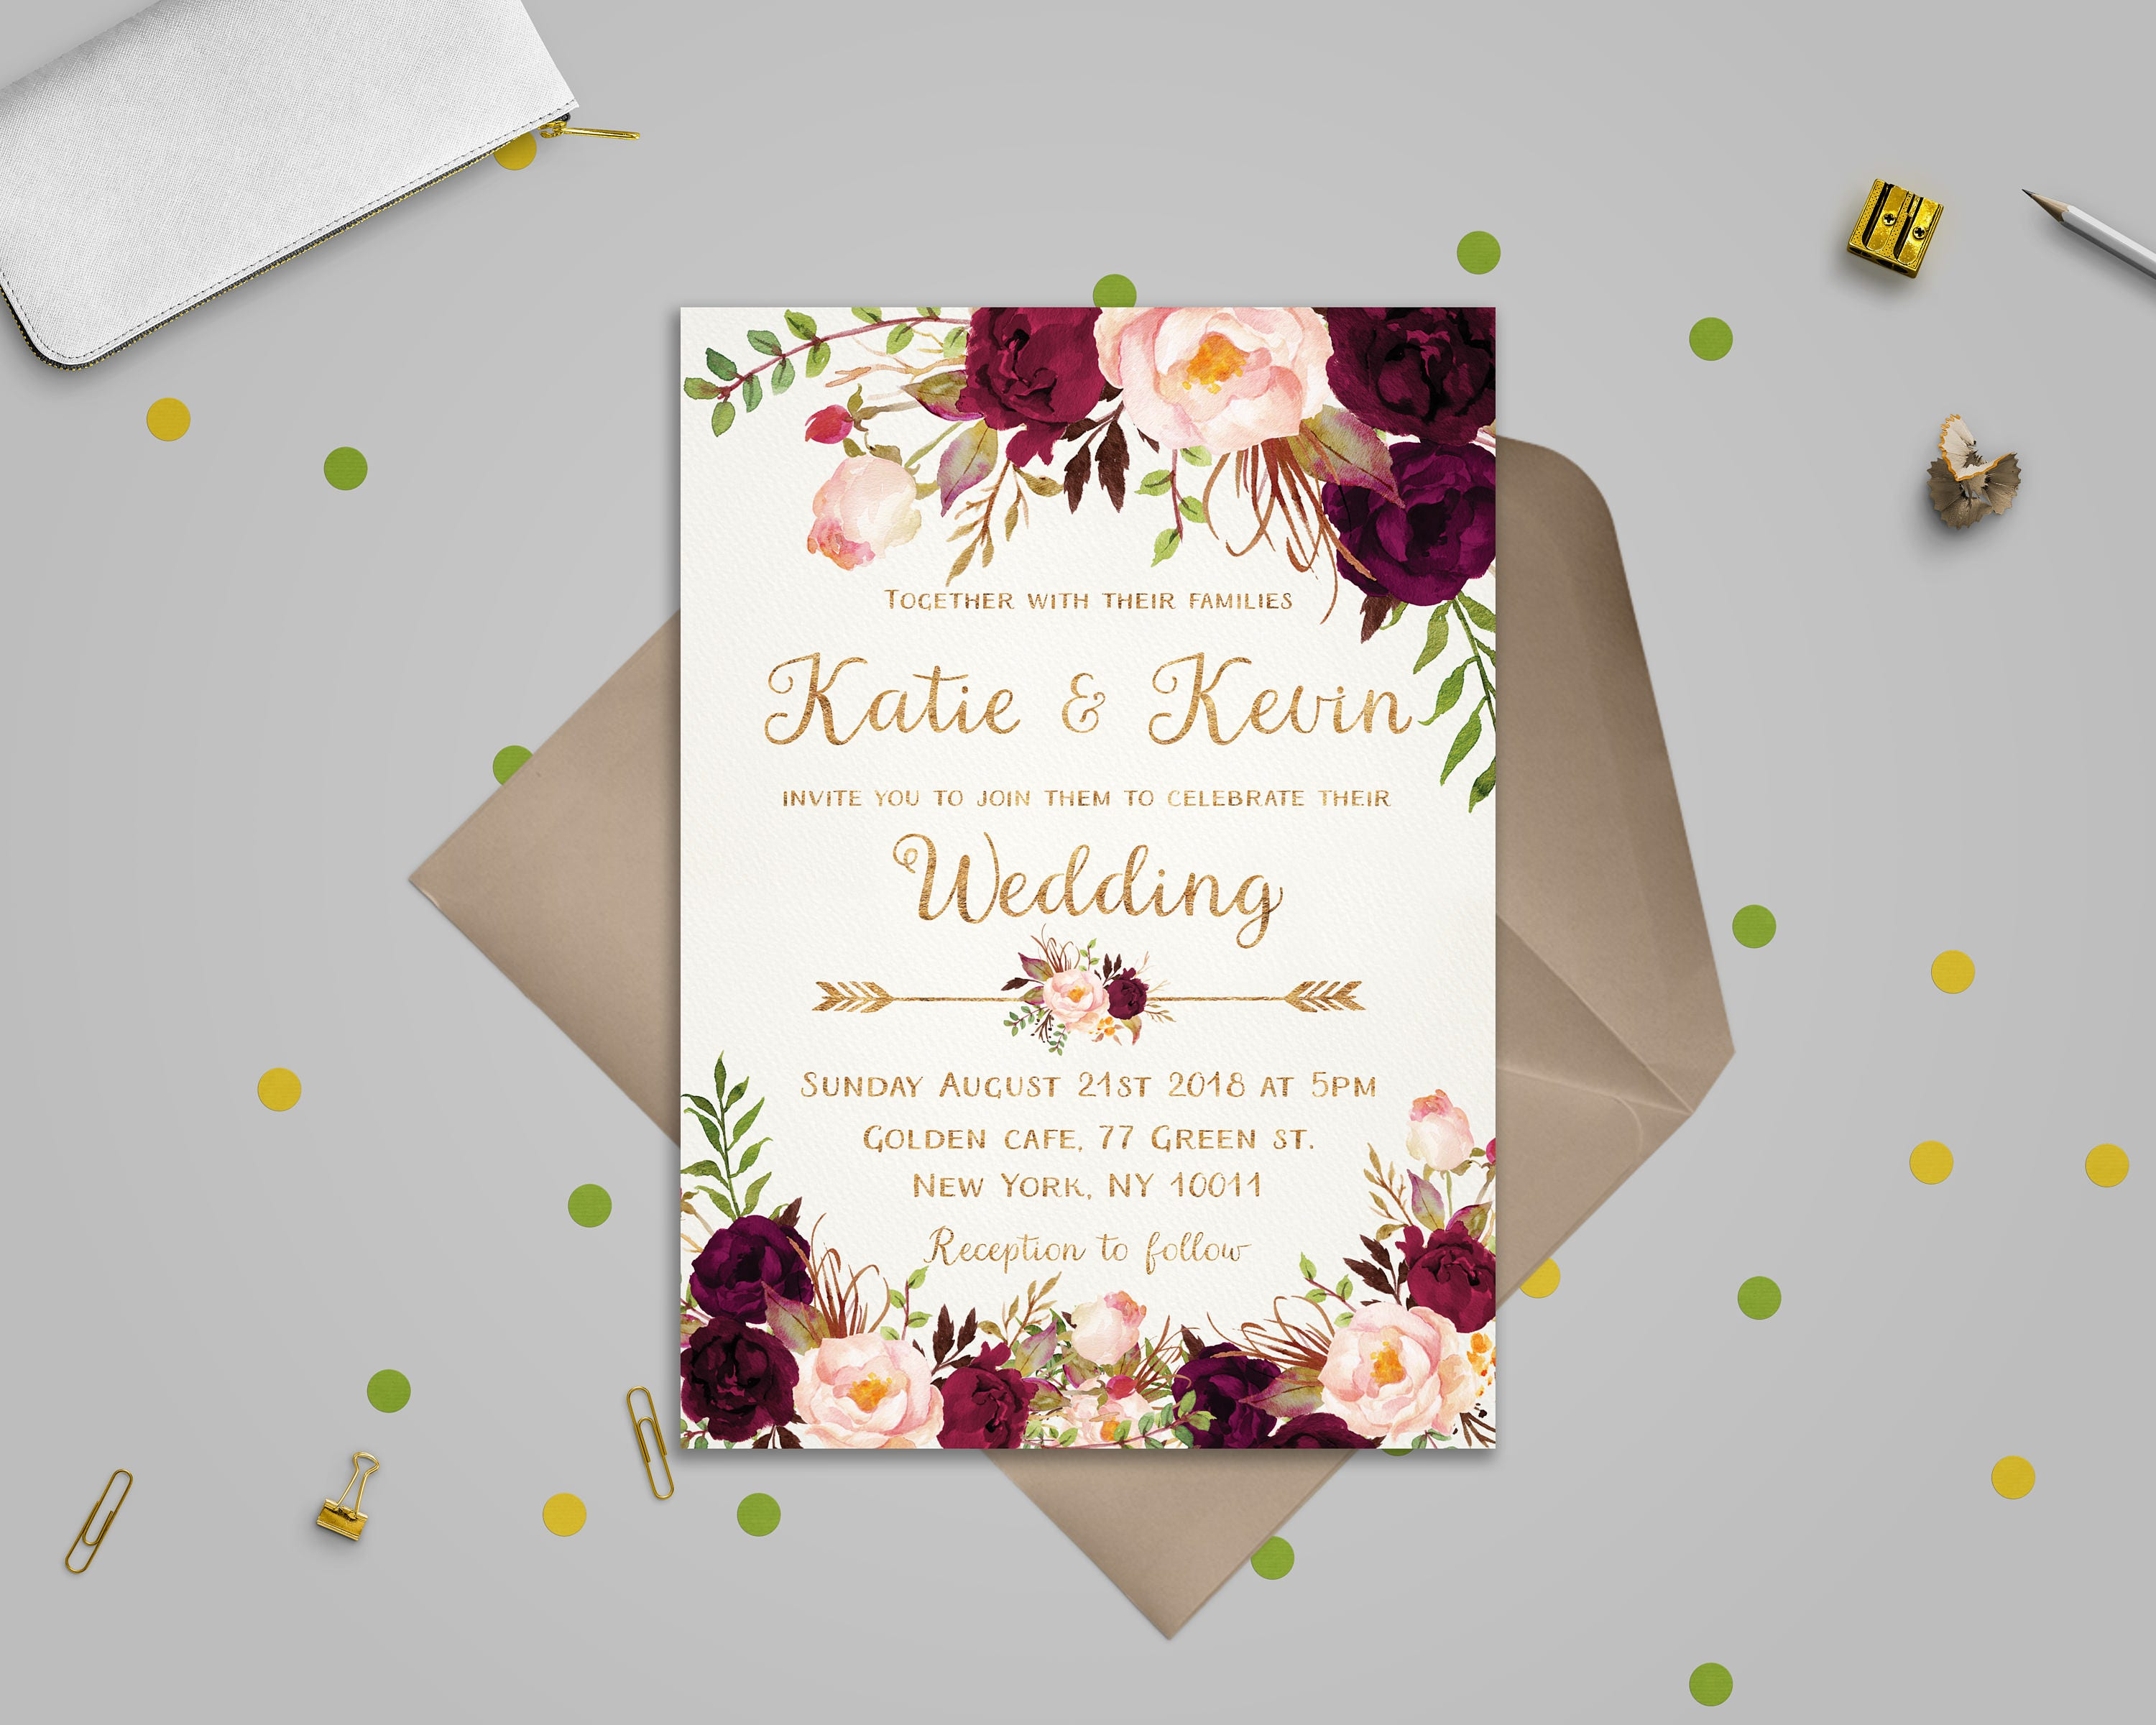 Floral wedding invitation template Wedding invitation | Etsy